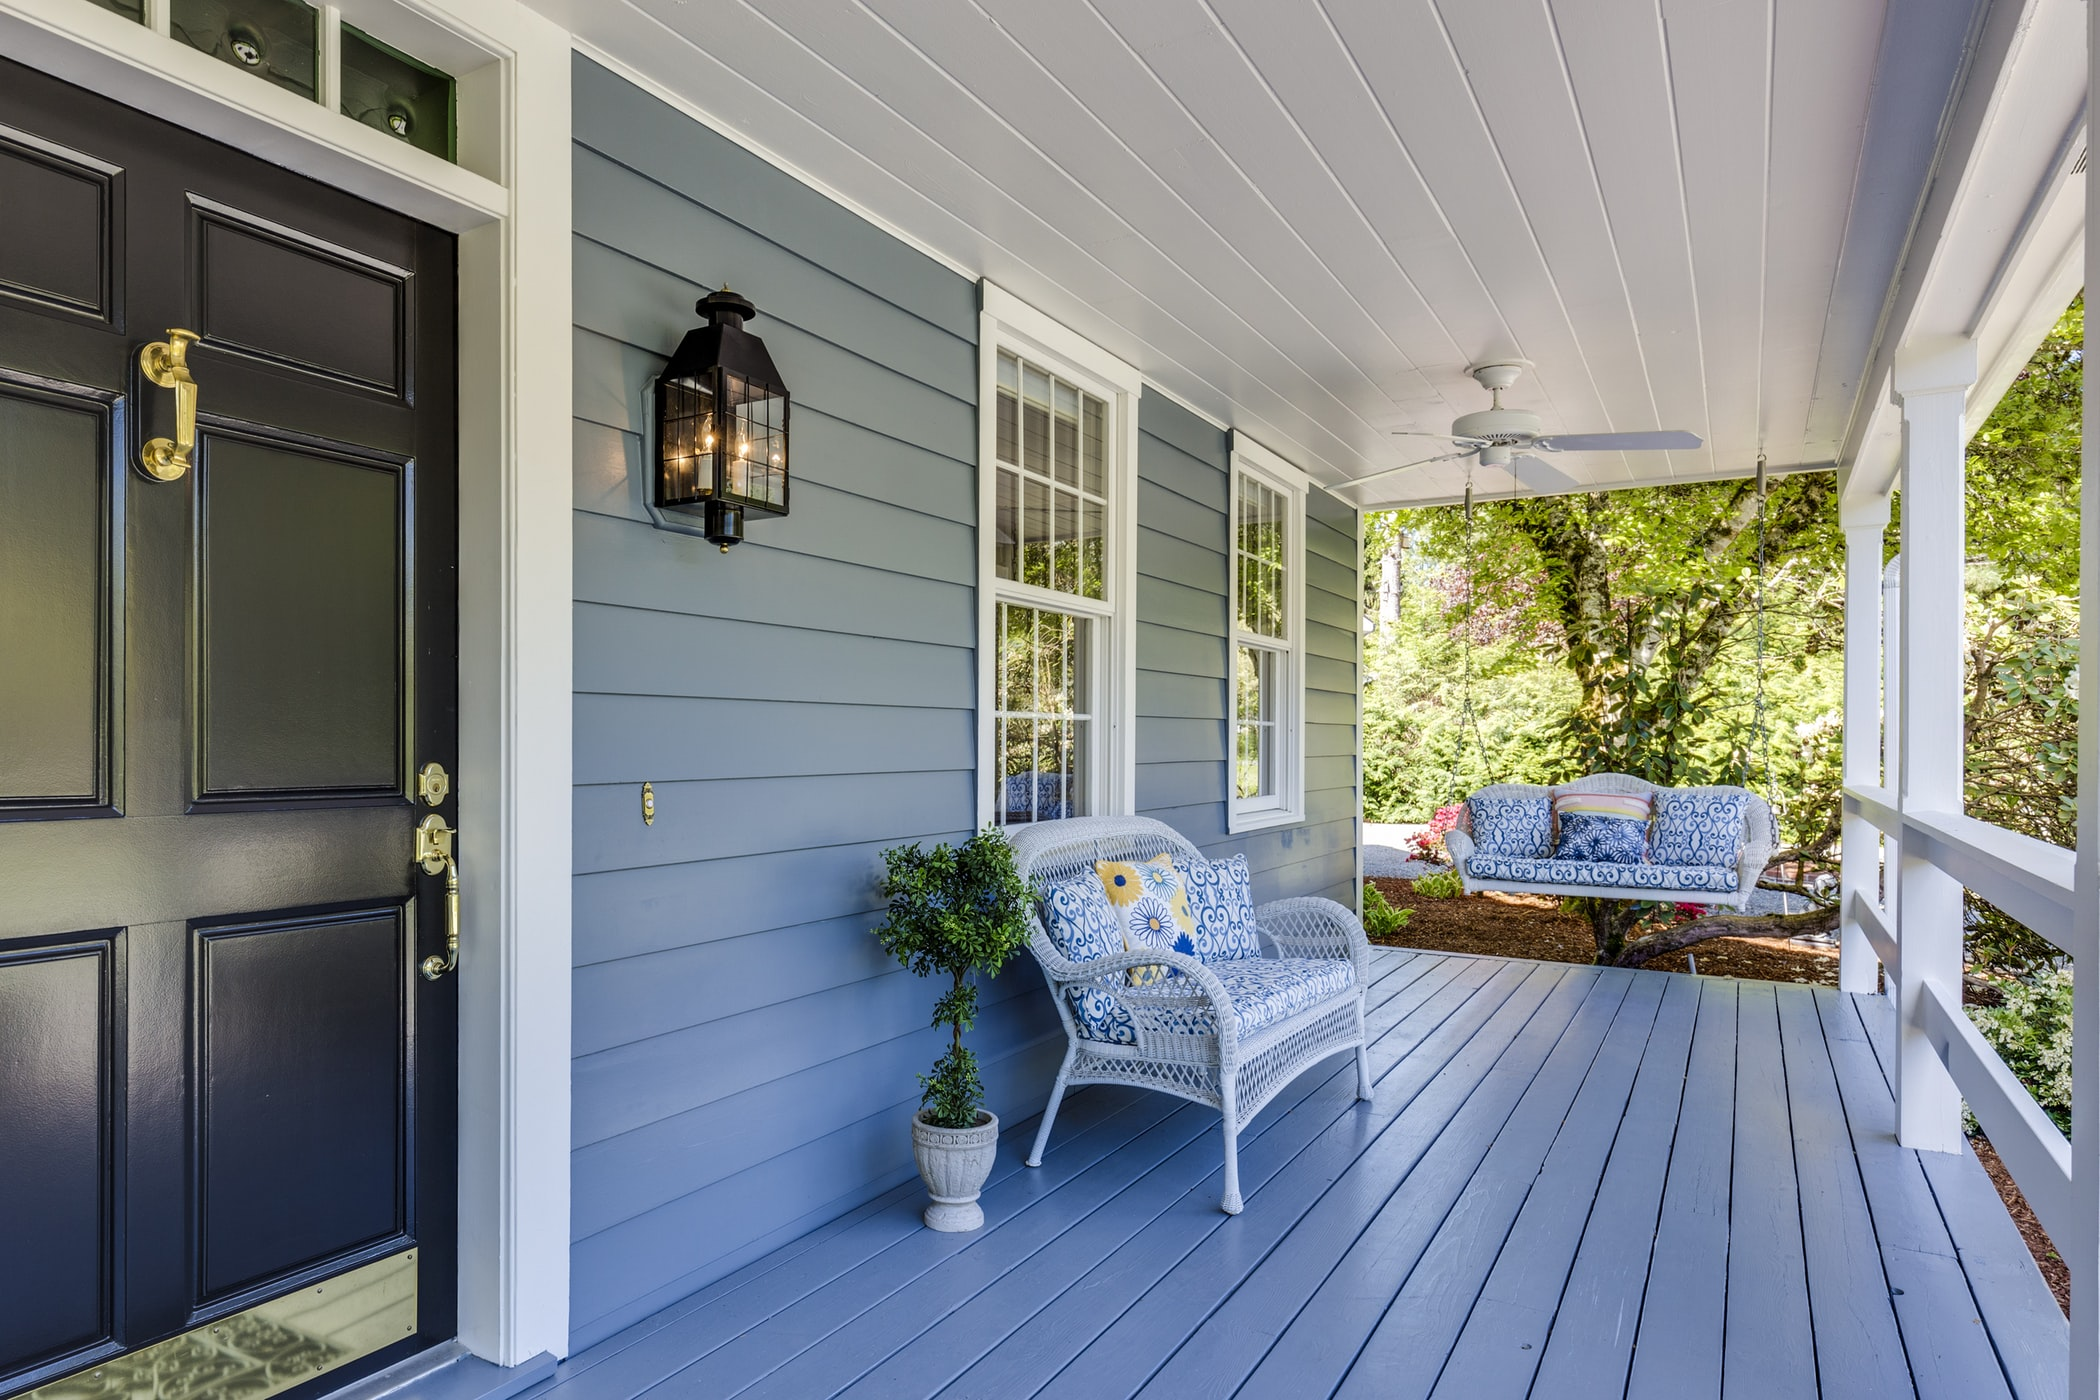 Homebuyer Advice: How to Beat the Delaware Competition